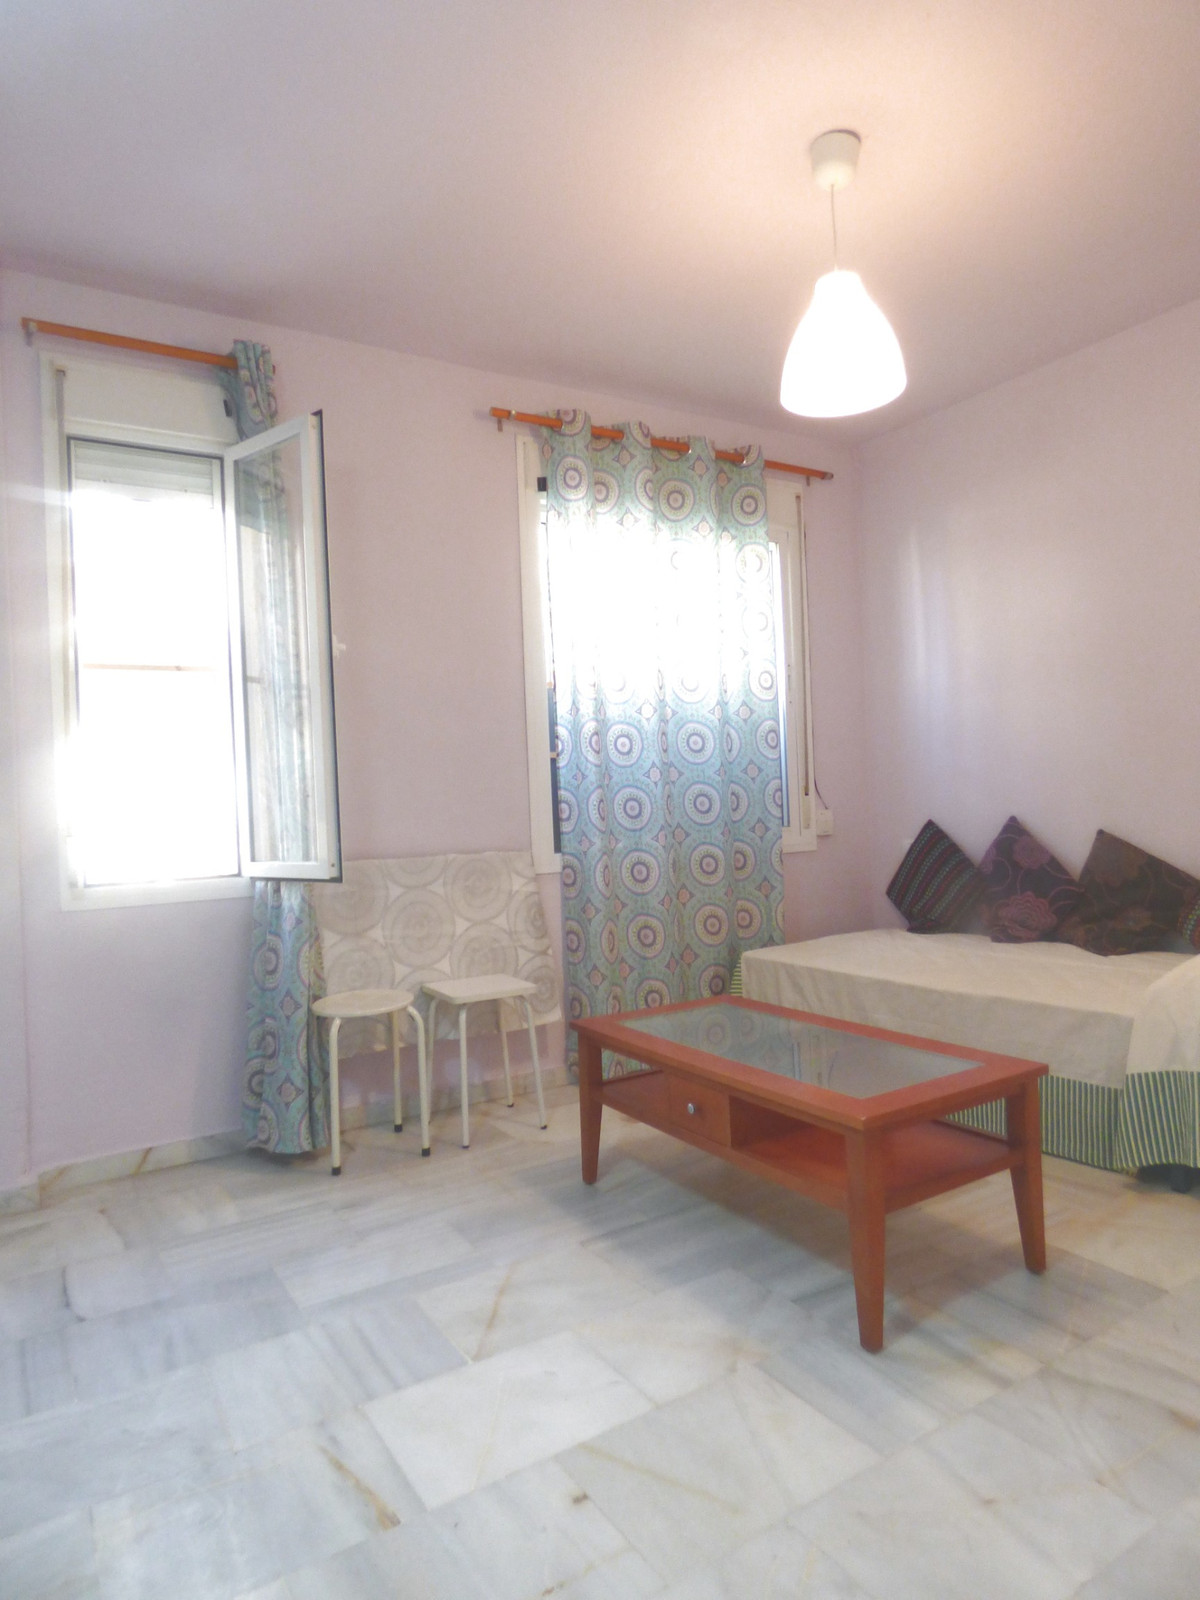 Studio for sale in Mijas, located next to the Cortes Ingles. It is a low, comfortable and flirtatiou,Spain